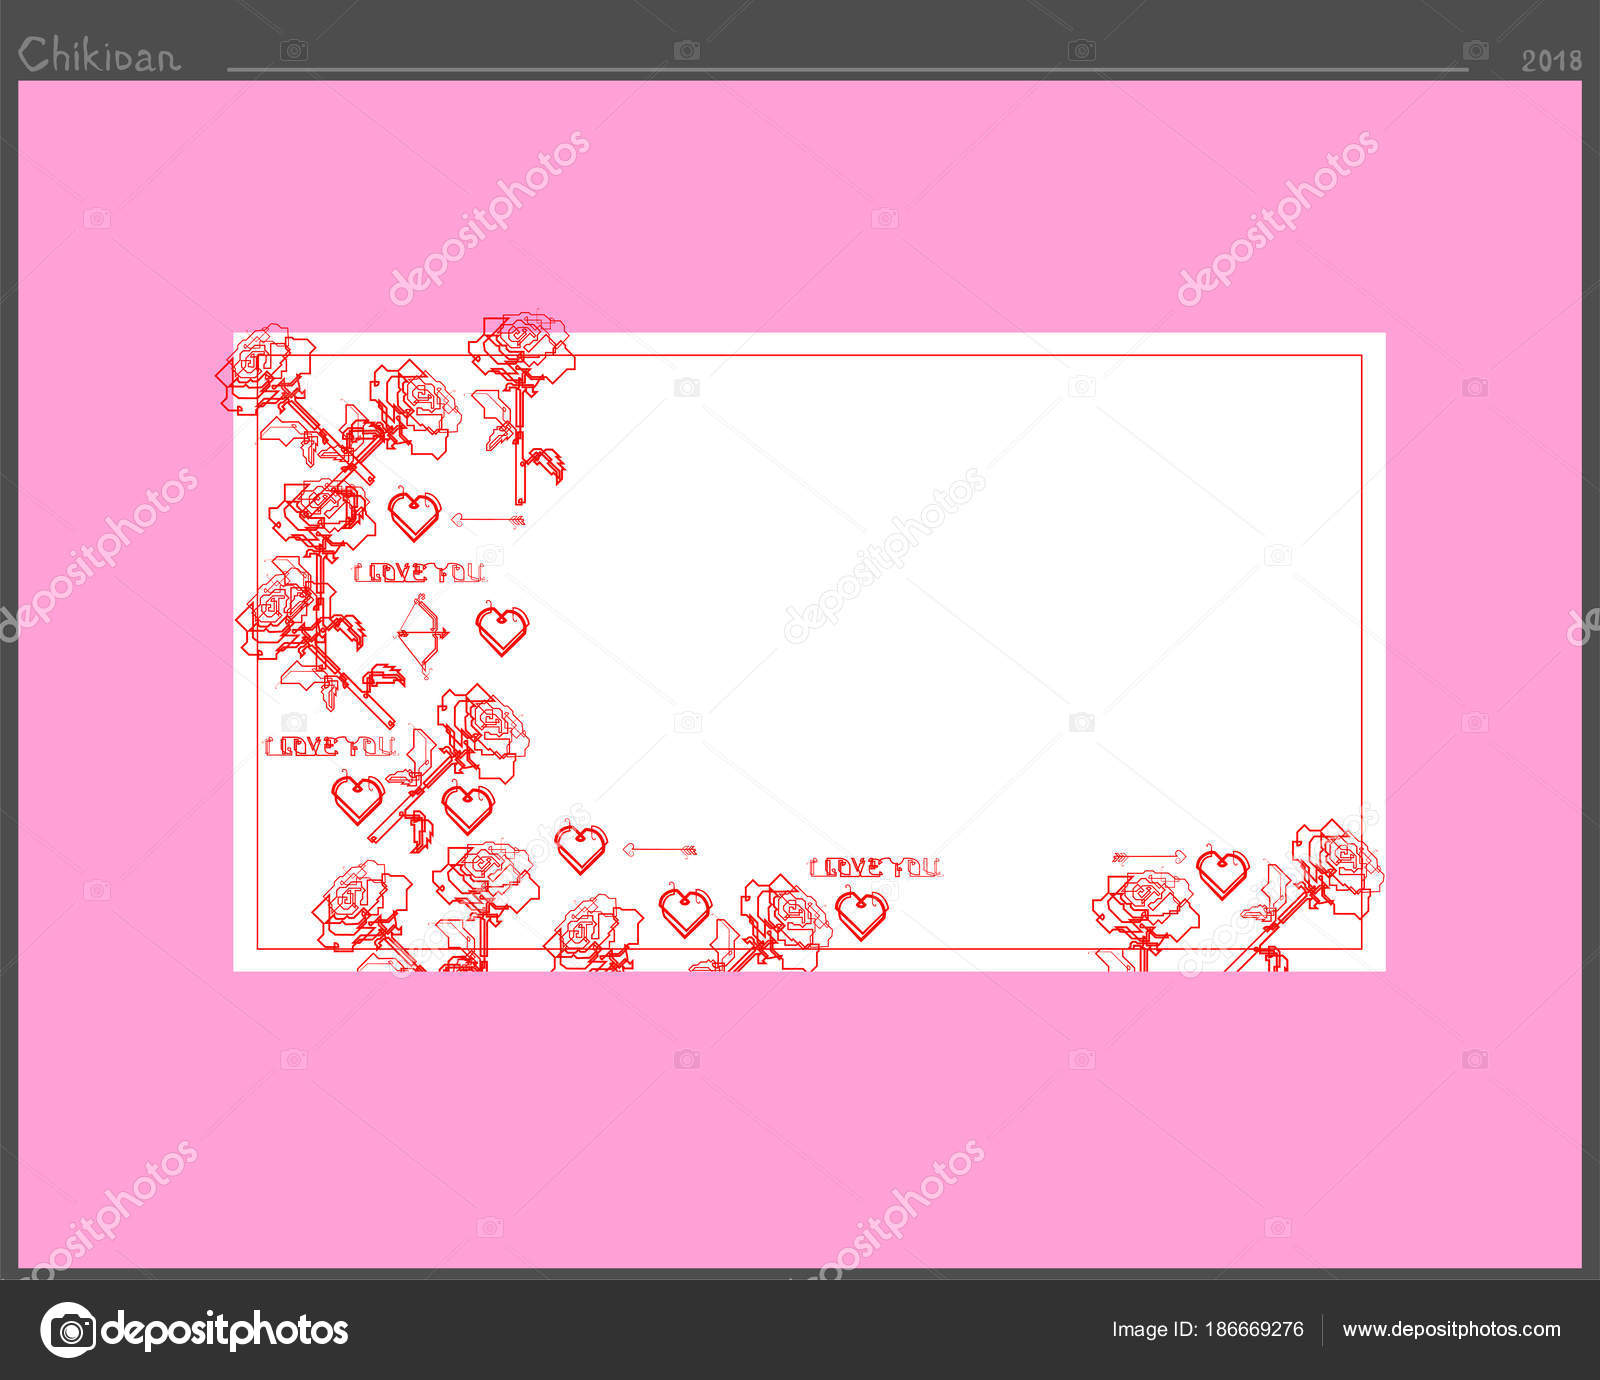 A Frame For Inscriptions Of Love Created From The Symbols Of The